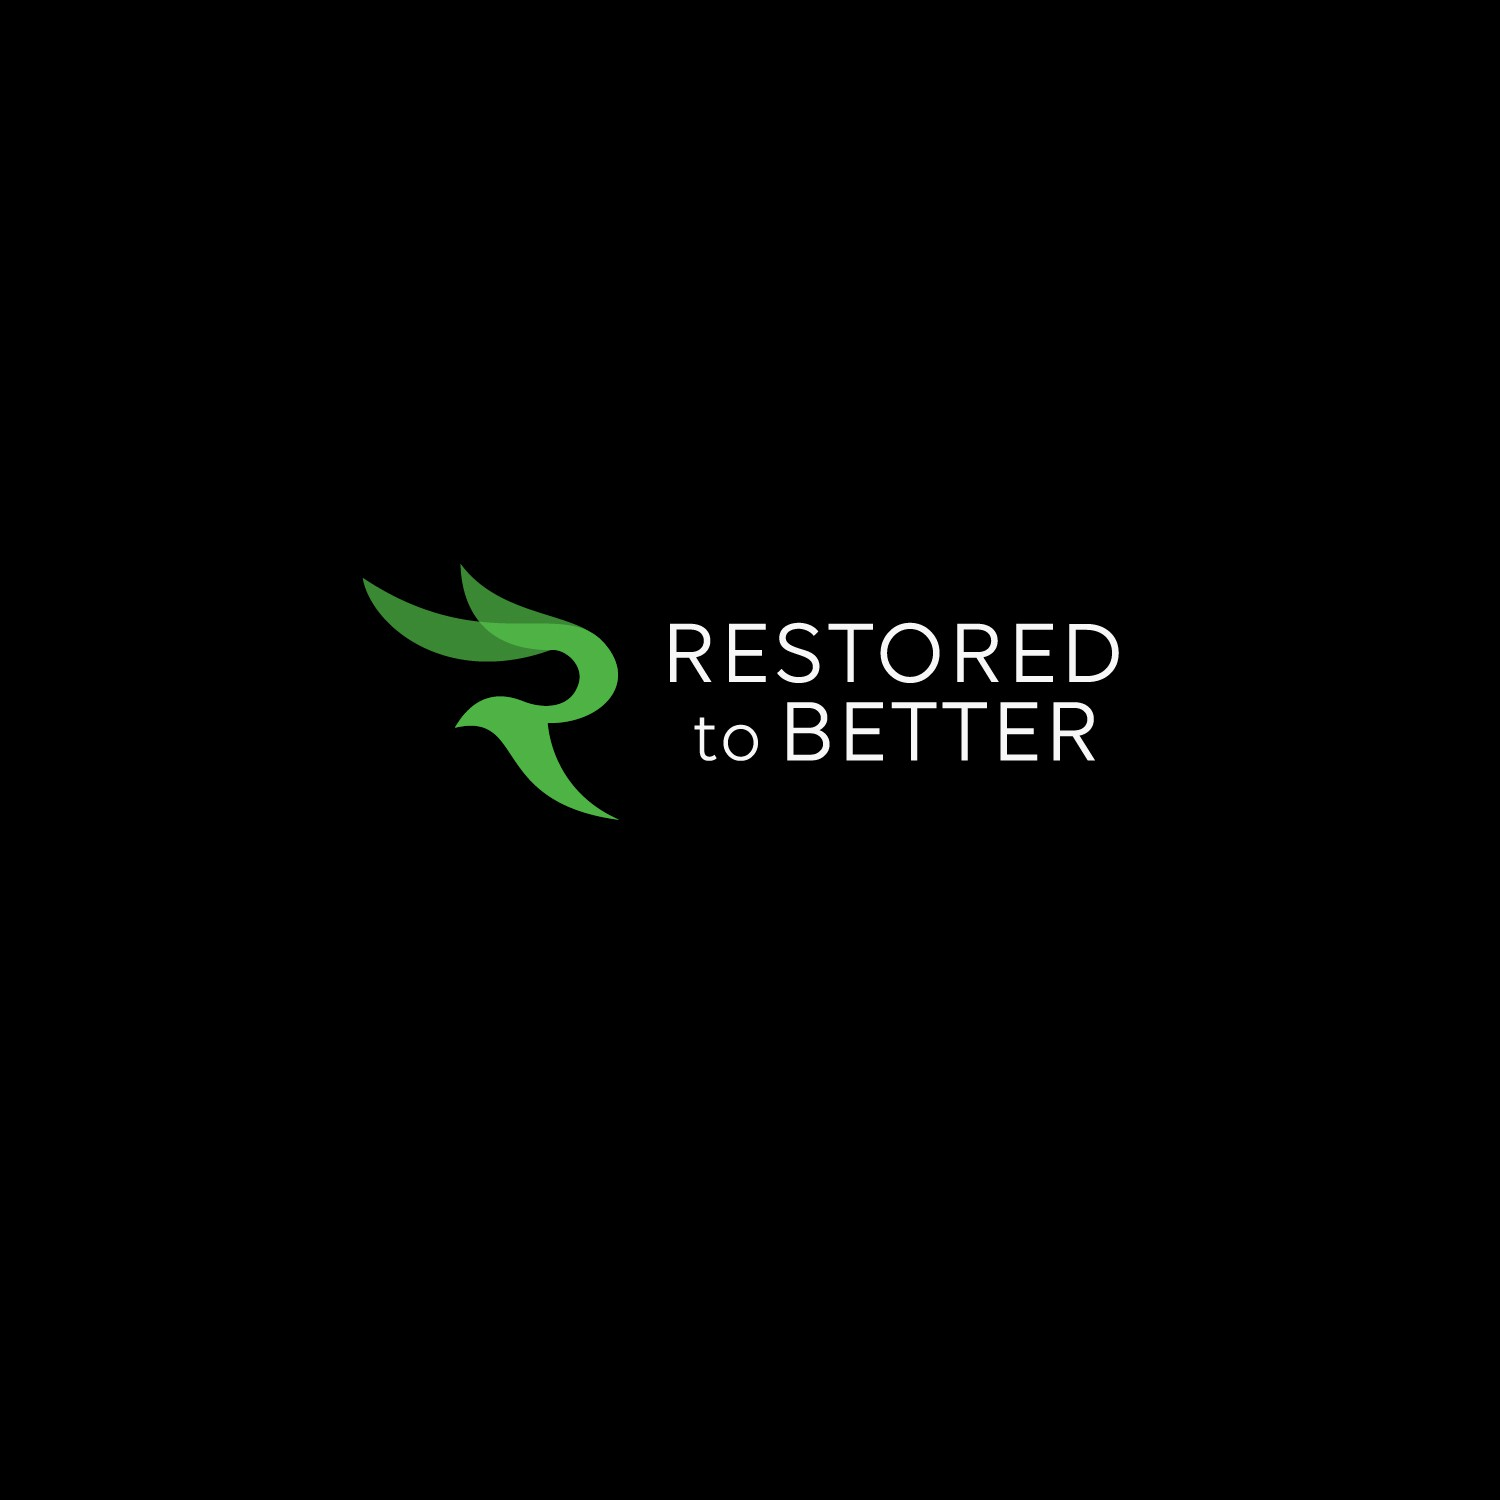 Simple, clean, natural logo for a lifestyle business focused on restoration, including home